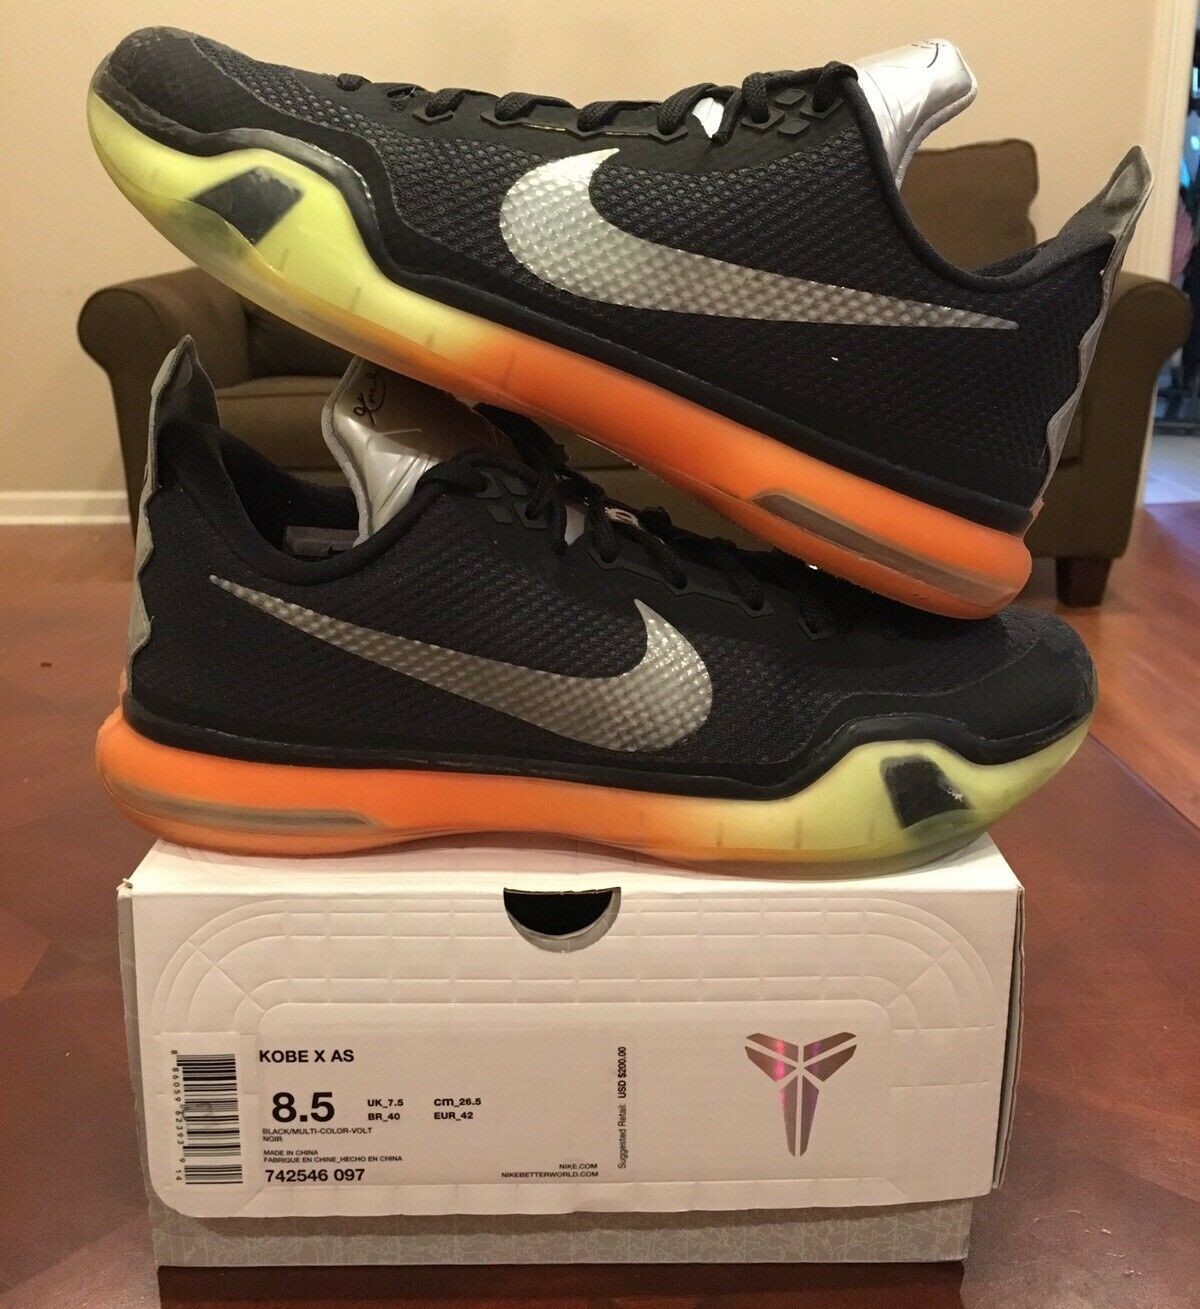 Nike Kobe X 10 AS All Star 8.5 ASG Game Black Volt Jordan Yeezy 1 2 3 4 5 6 7 8